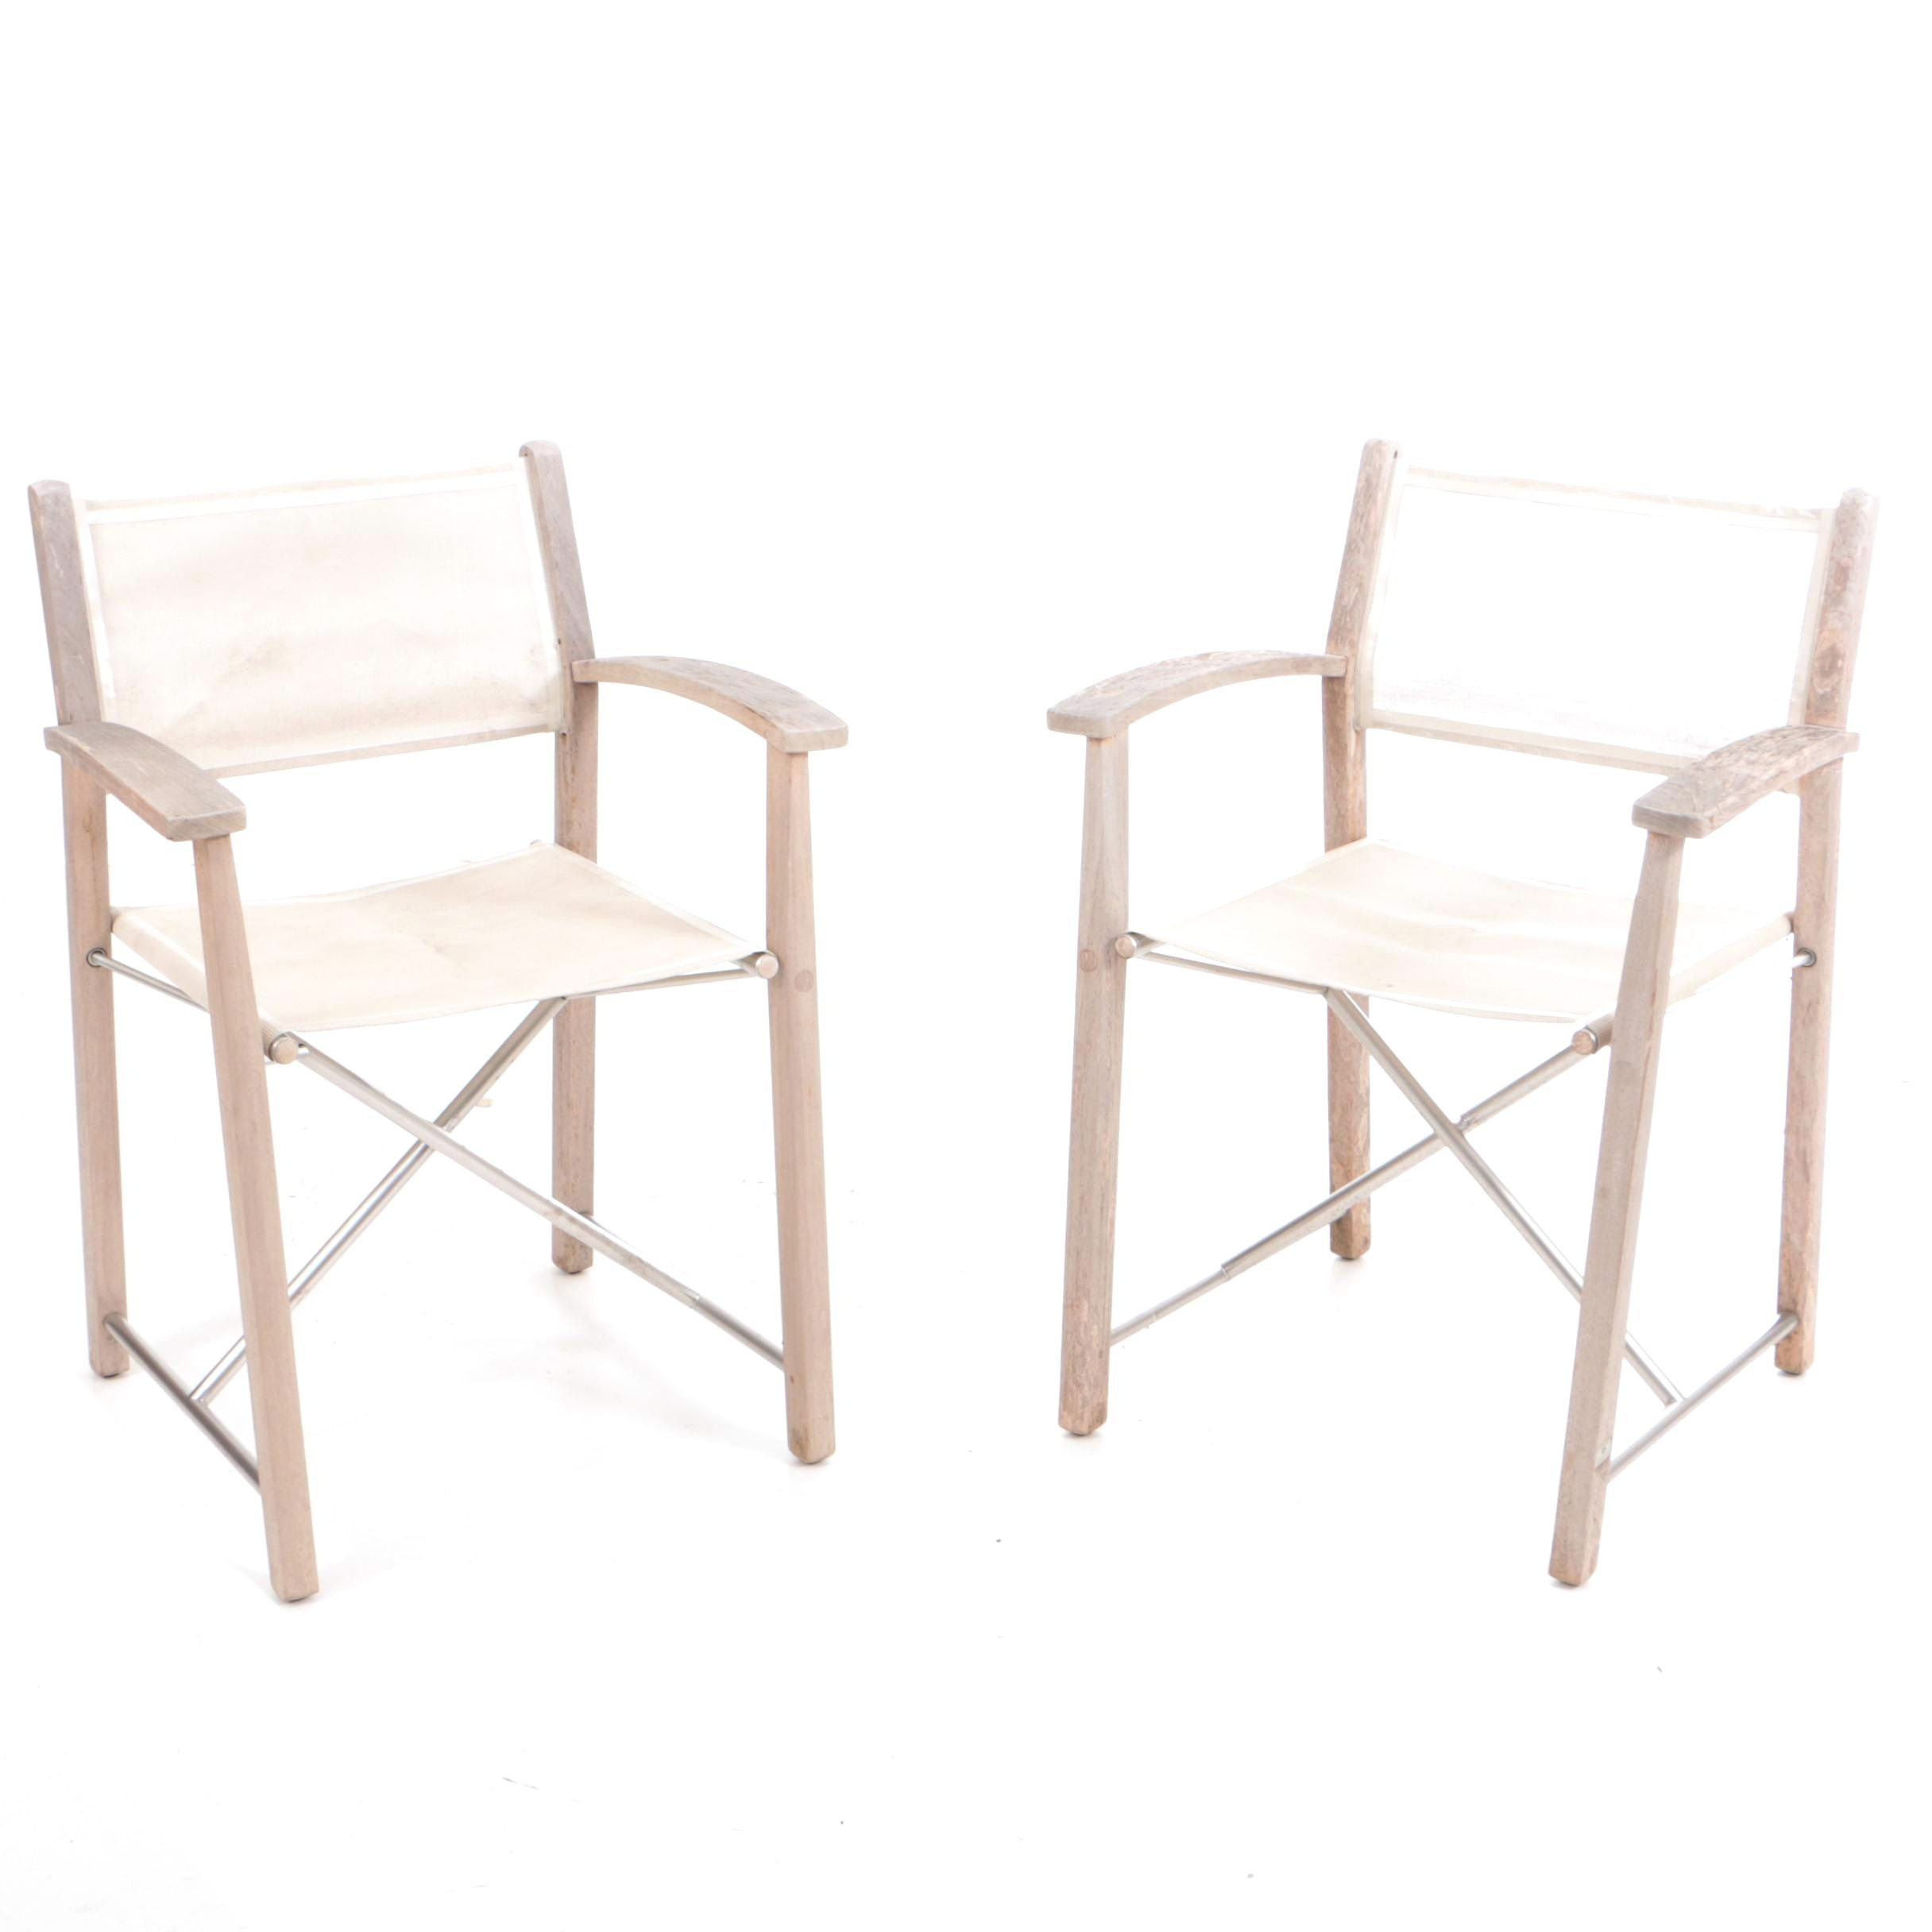 Pair of Gloster Teak Folding Chairs with Sling Seats